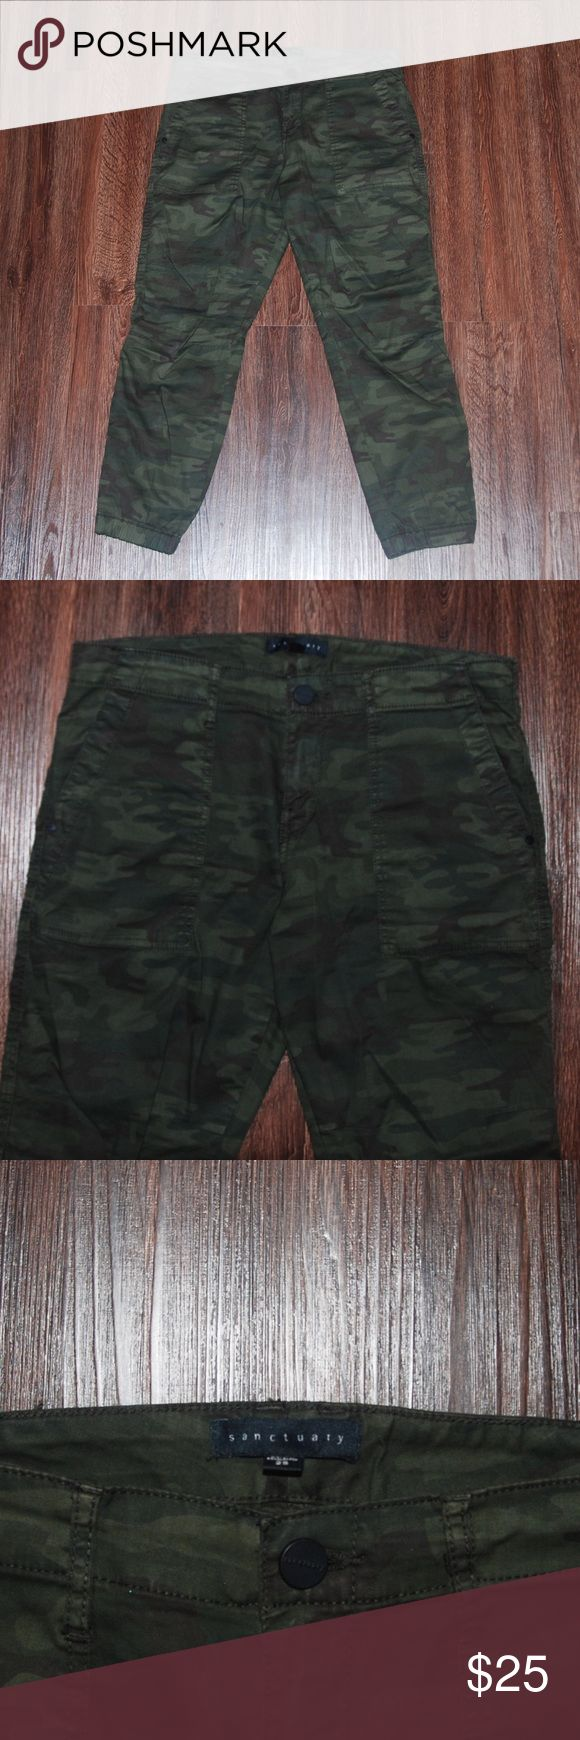 Sanctuary Camo Joggers Camo jogger pants with pockets. The bottoms have elastic and zippers. Sanctuary brand. 98% Cotton, 2% Spandex Sanctuary Pants Track Pants & Joggers